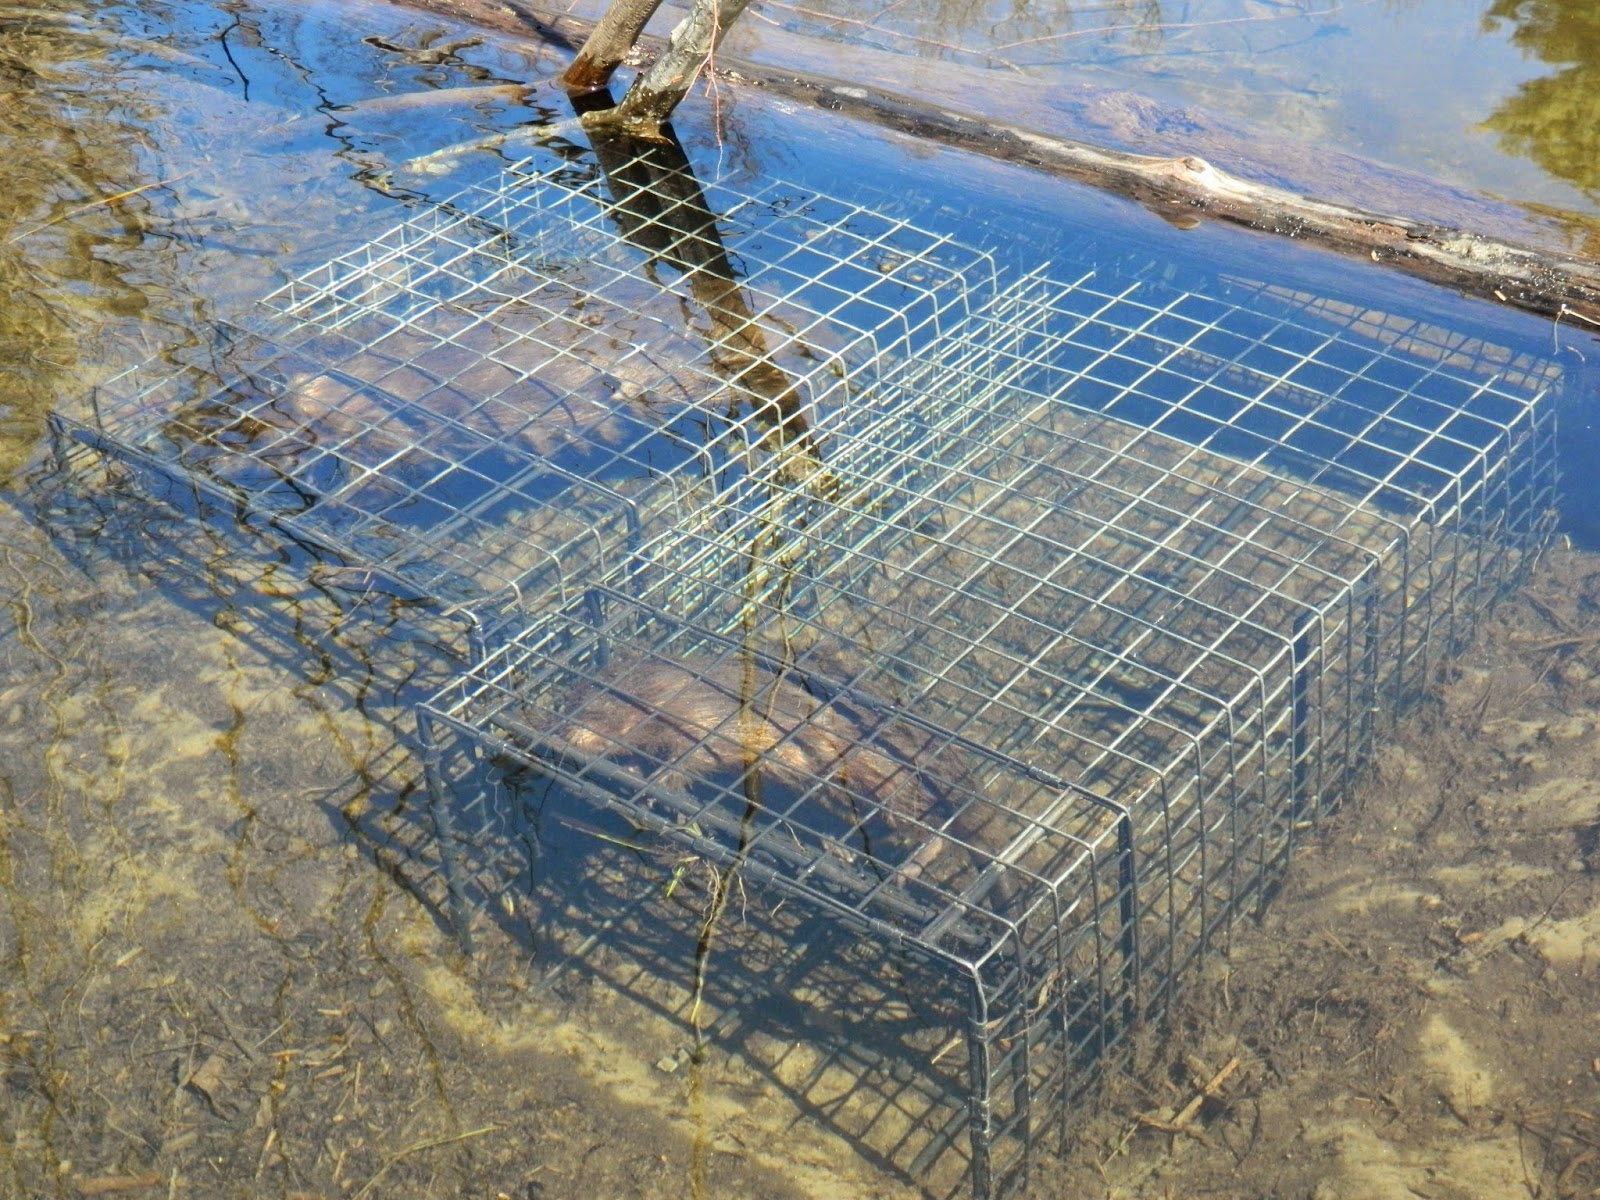 How to Catch Beavers